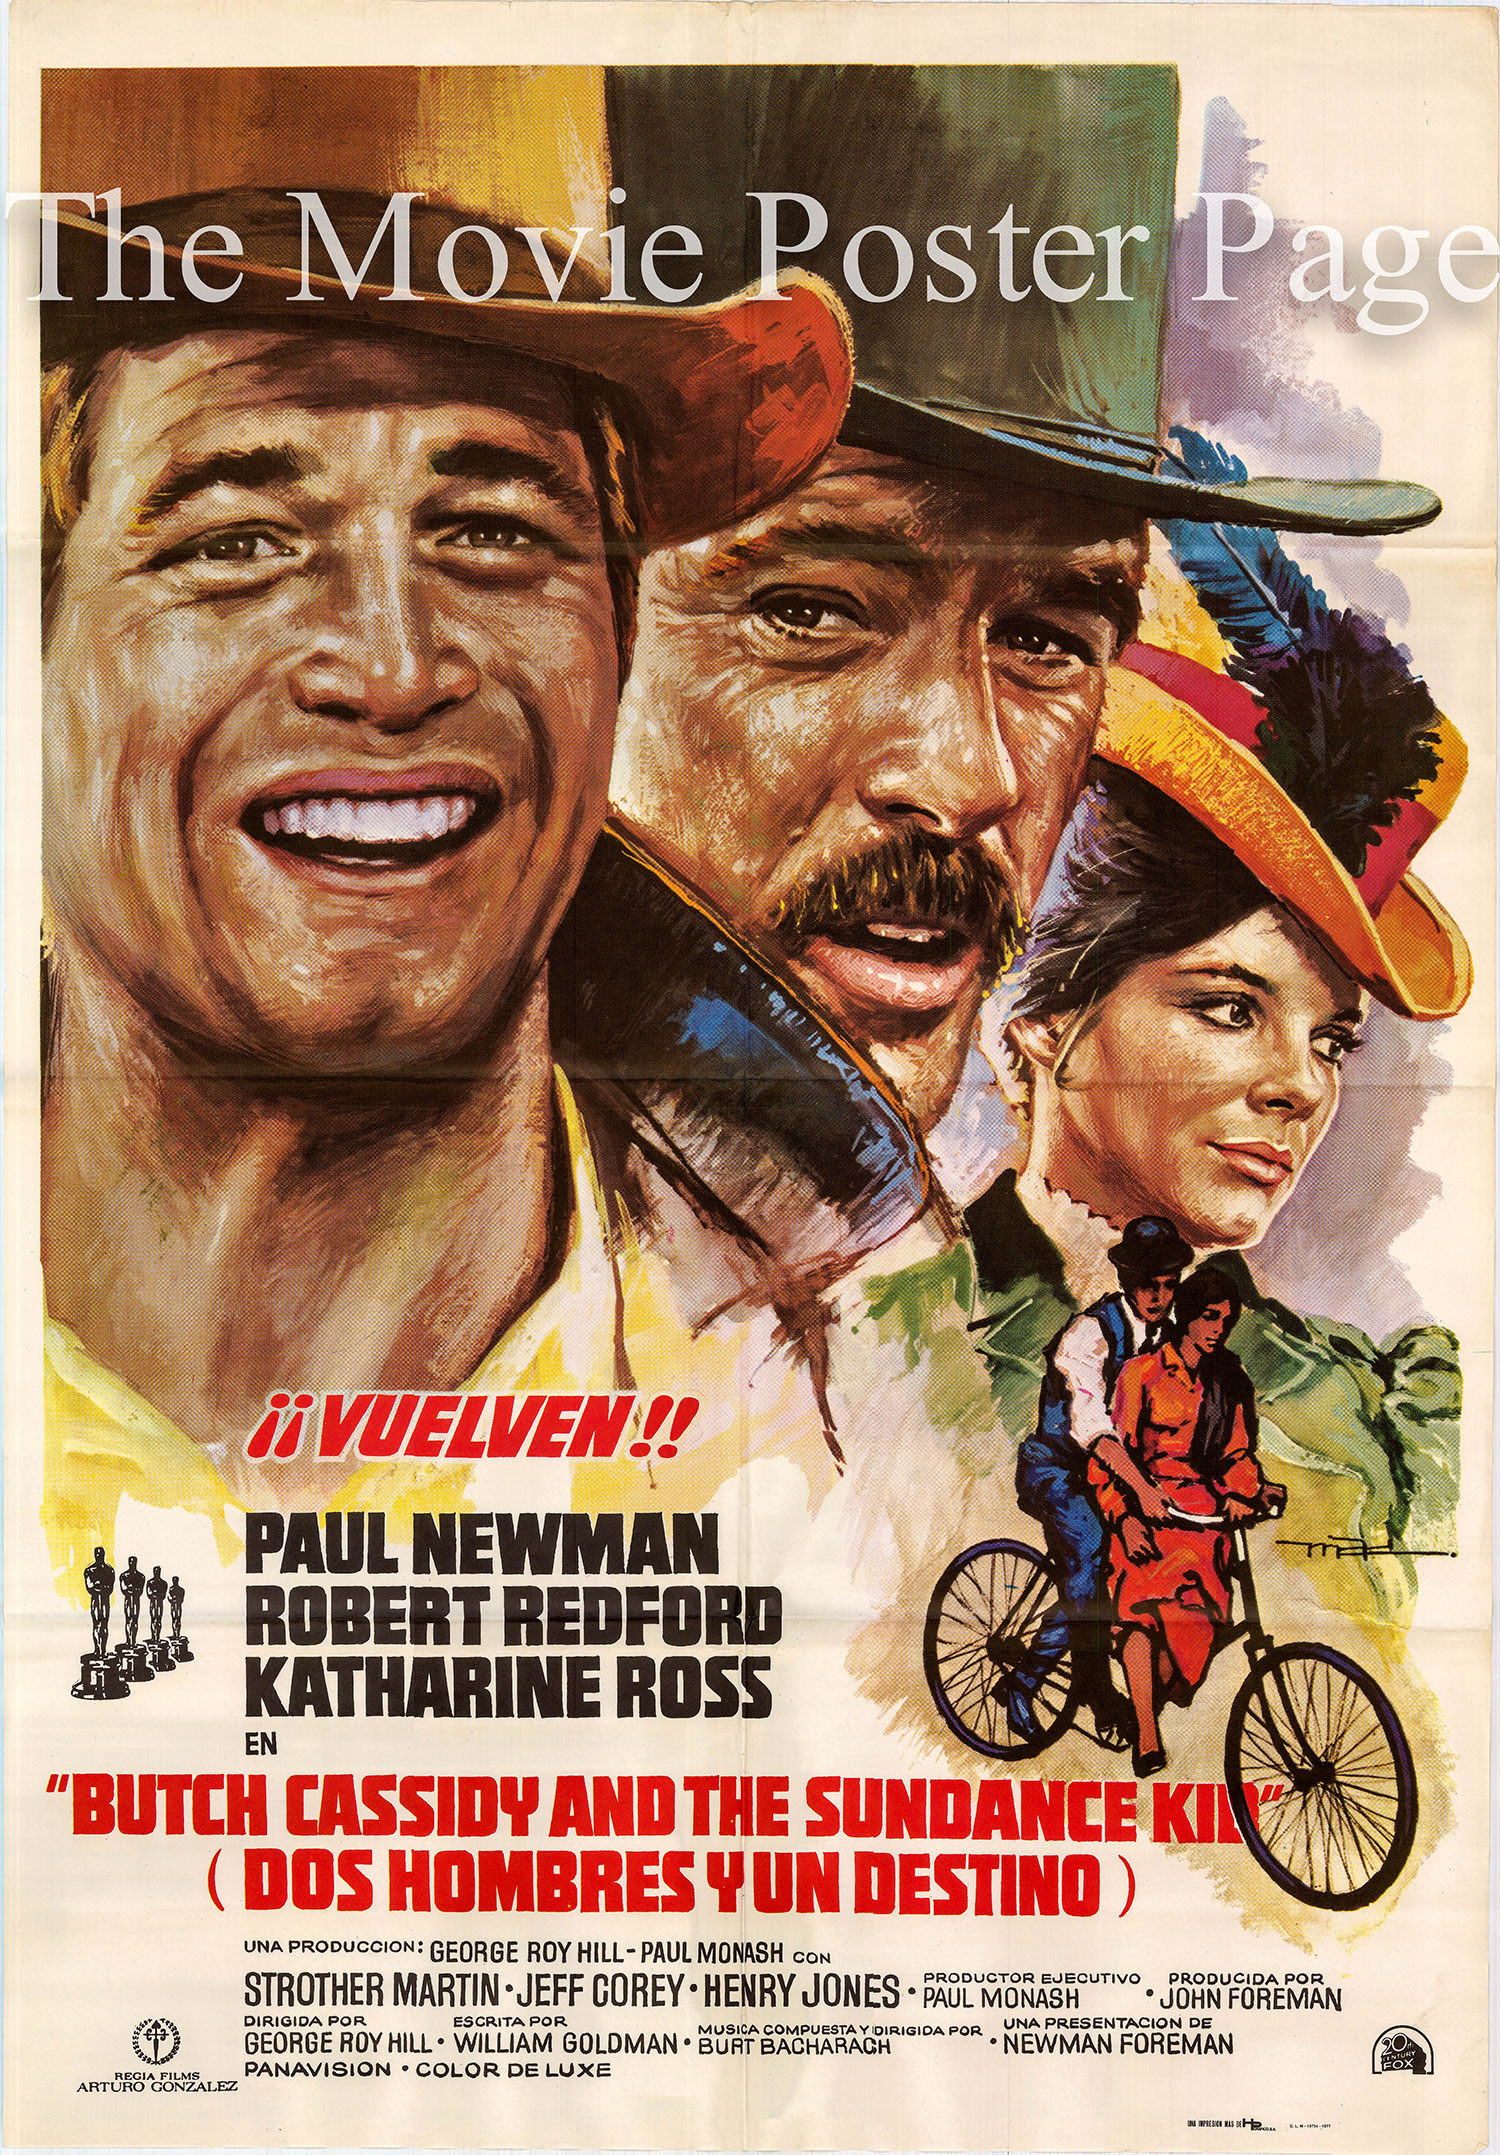 Pictured is a Spanish one-sheet poster for a 1977 rerelease of the 1969 George Roy Hill film Butch Cassidy and the Sundance Kid.